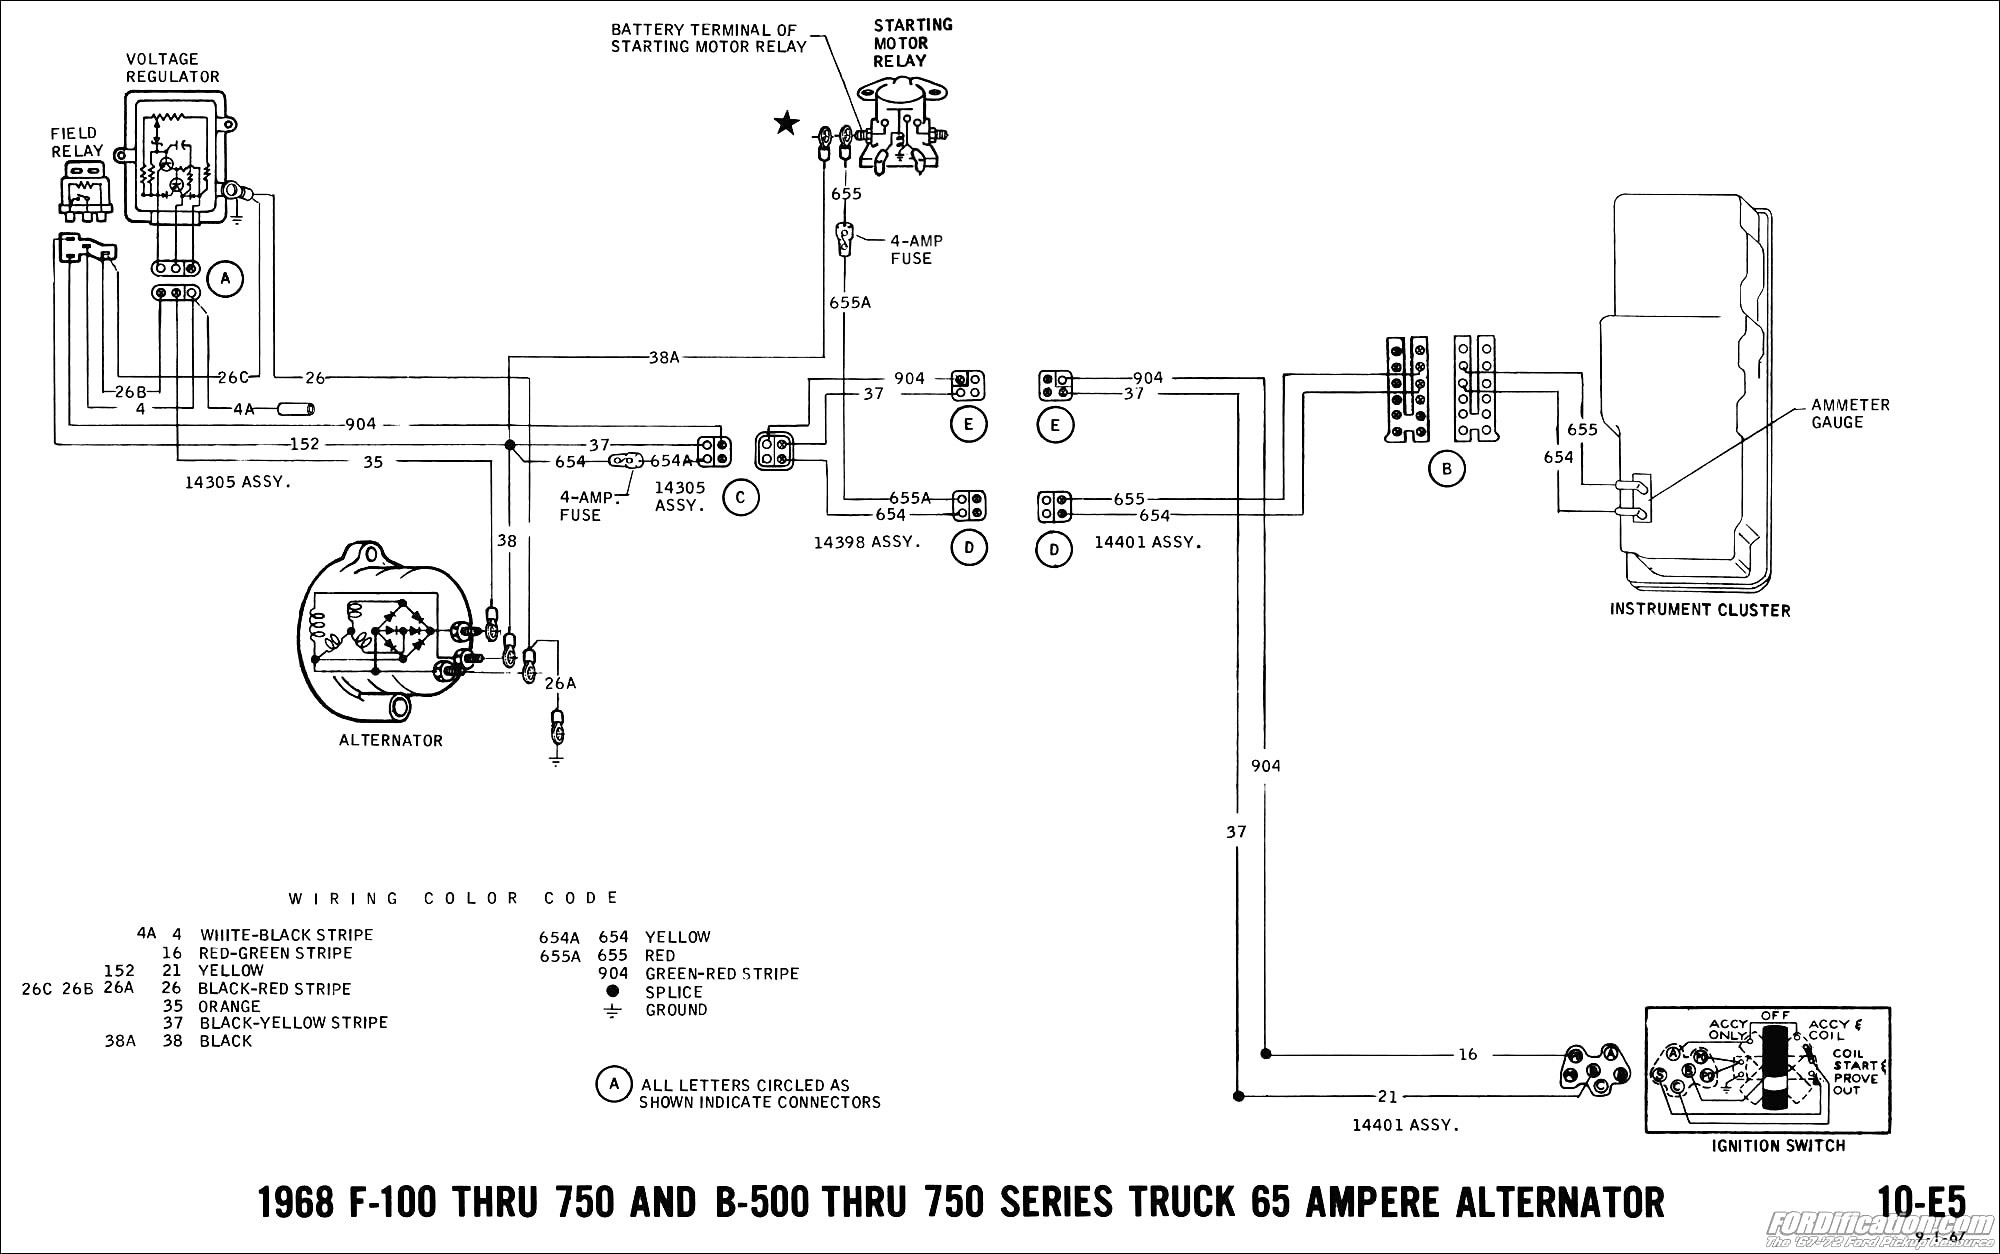 1967 mustang alternator wiring diagram Download-Alternator Wiring Diagram for 1967 Mustang Valid Typical Alternator Wiring Diagram Best Wiring 1968 Mustang 3-m